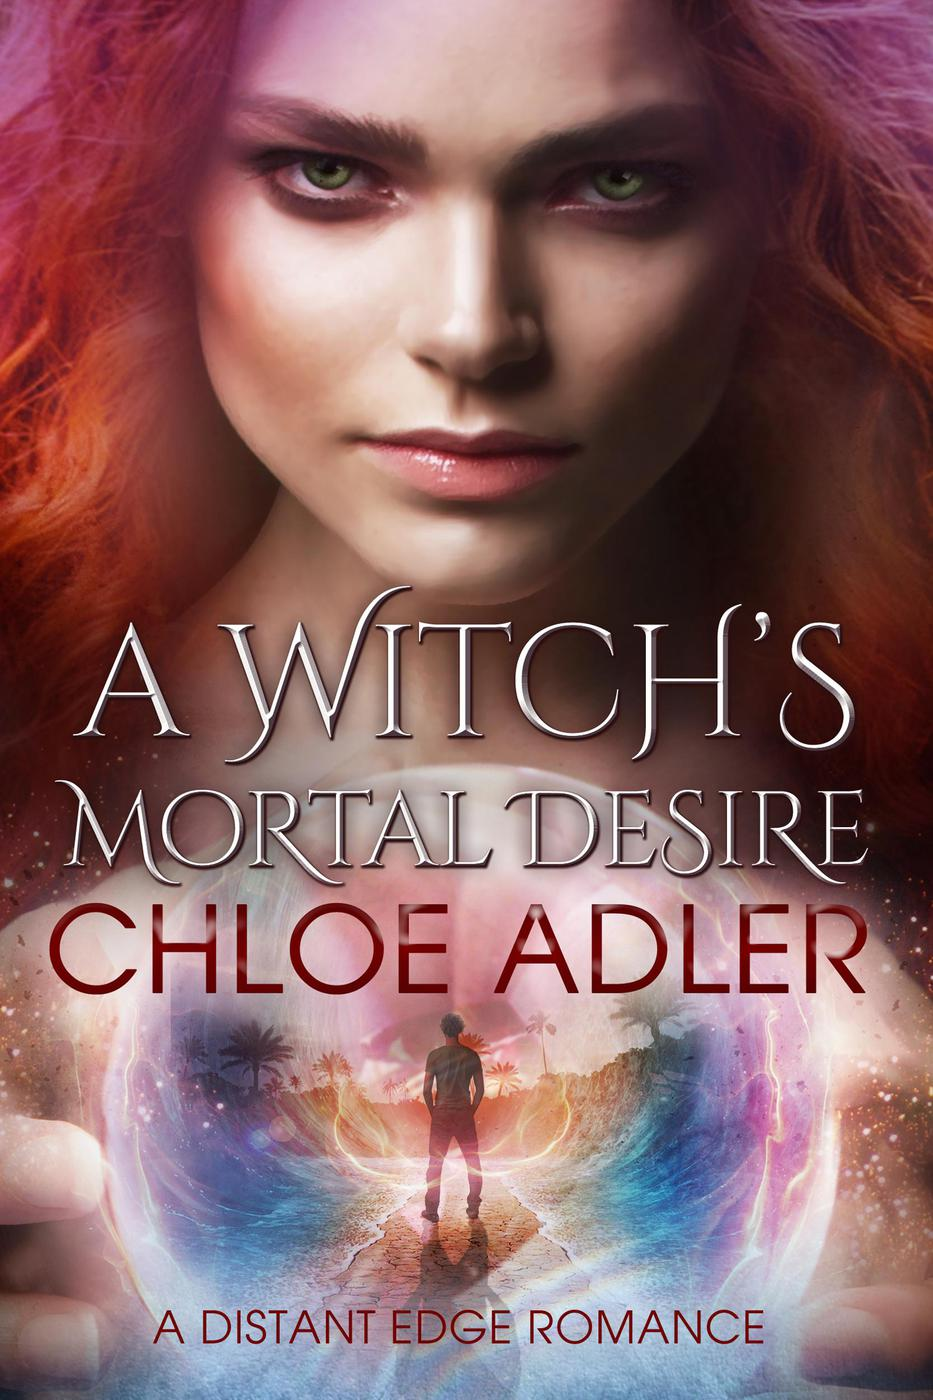 A Witch's Mortal Desire (Love on the Edge, #1)